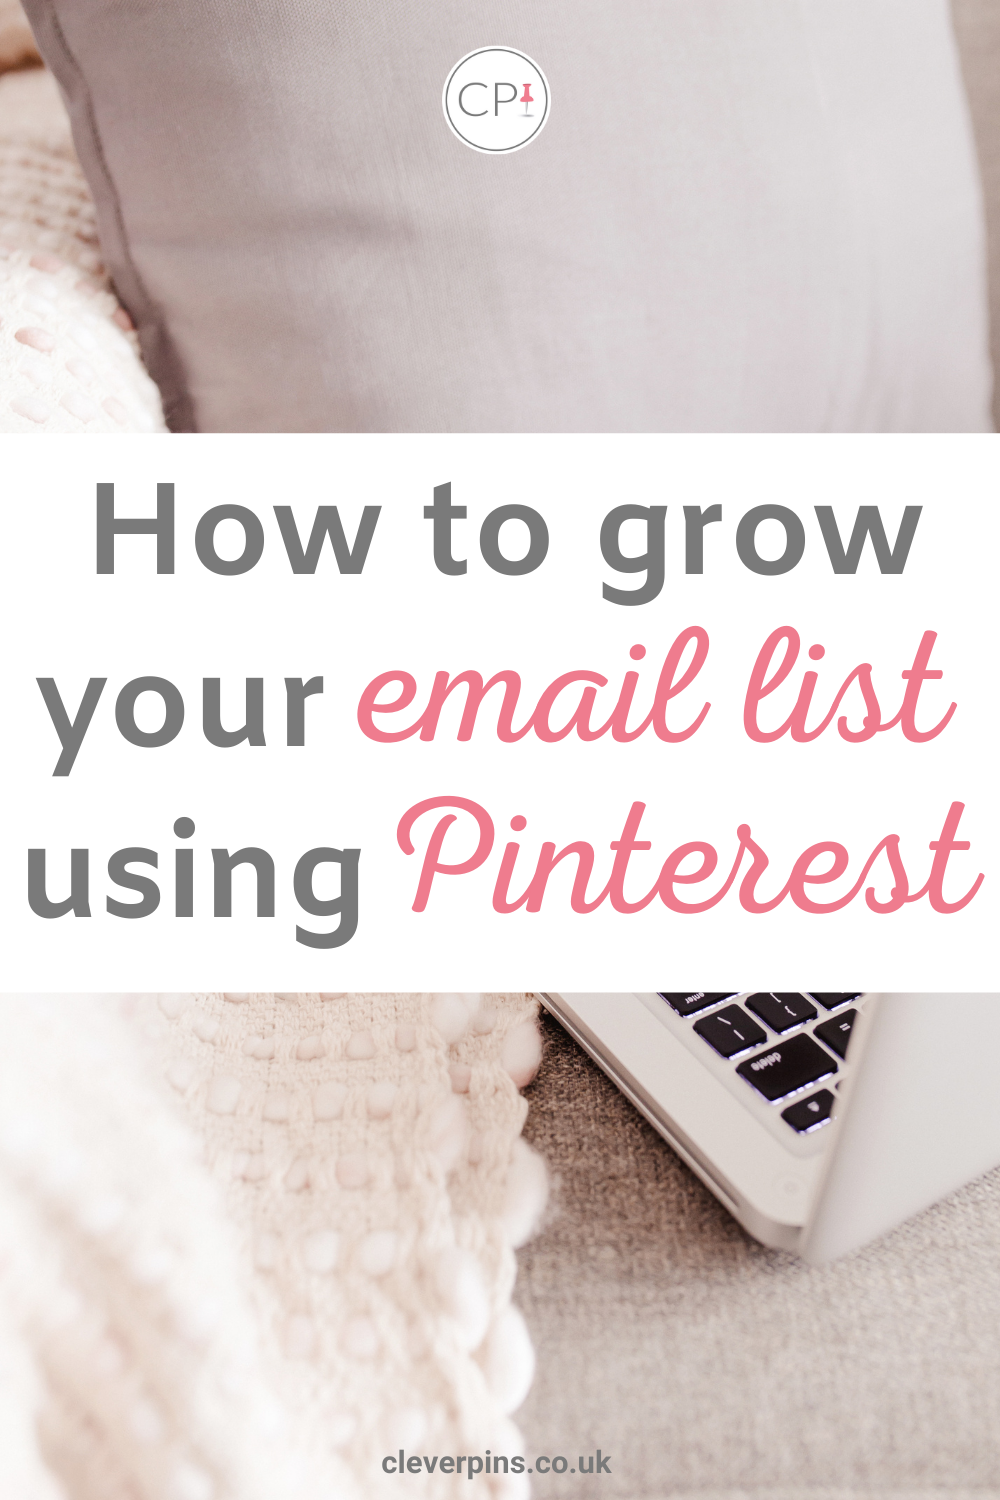 How To Grow Your Email List Using Pinterest